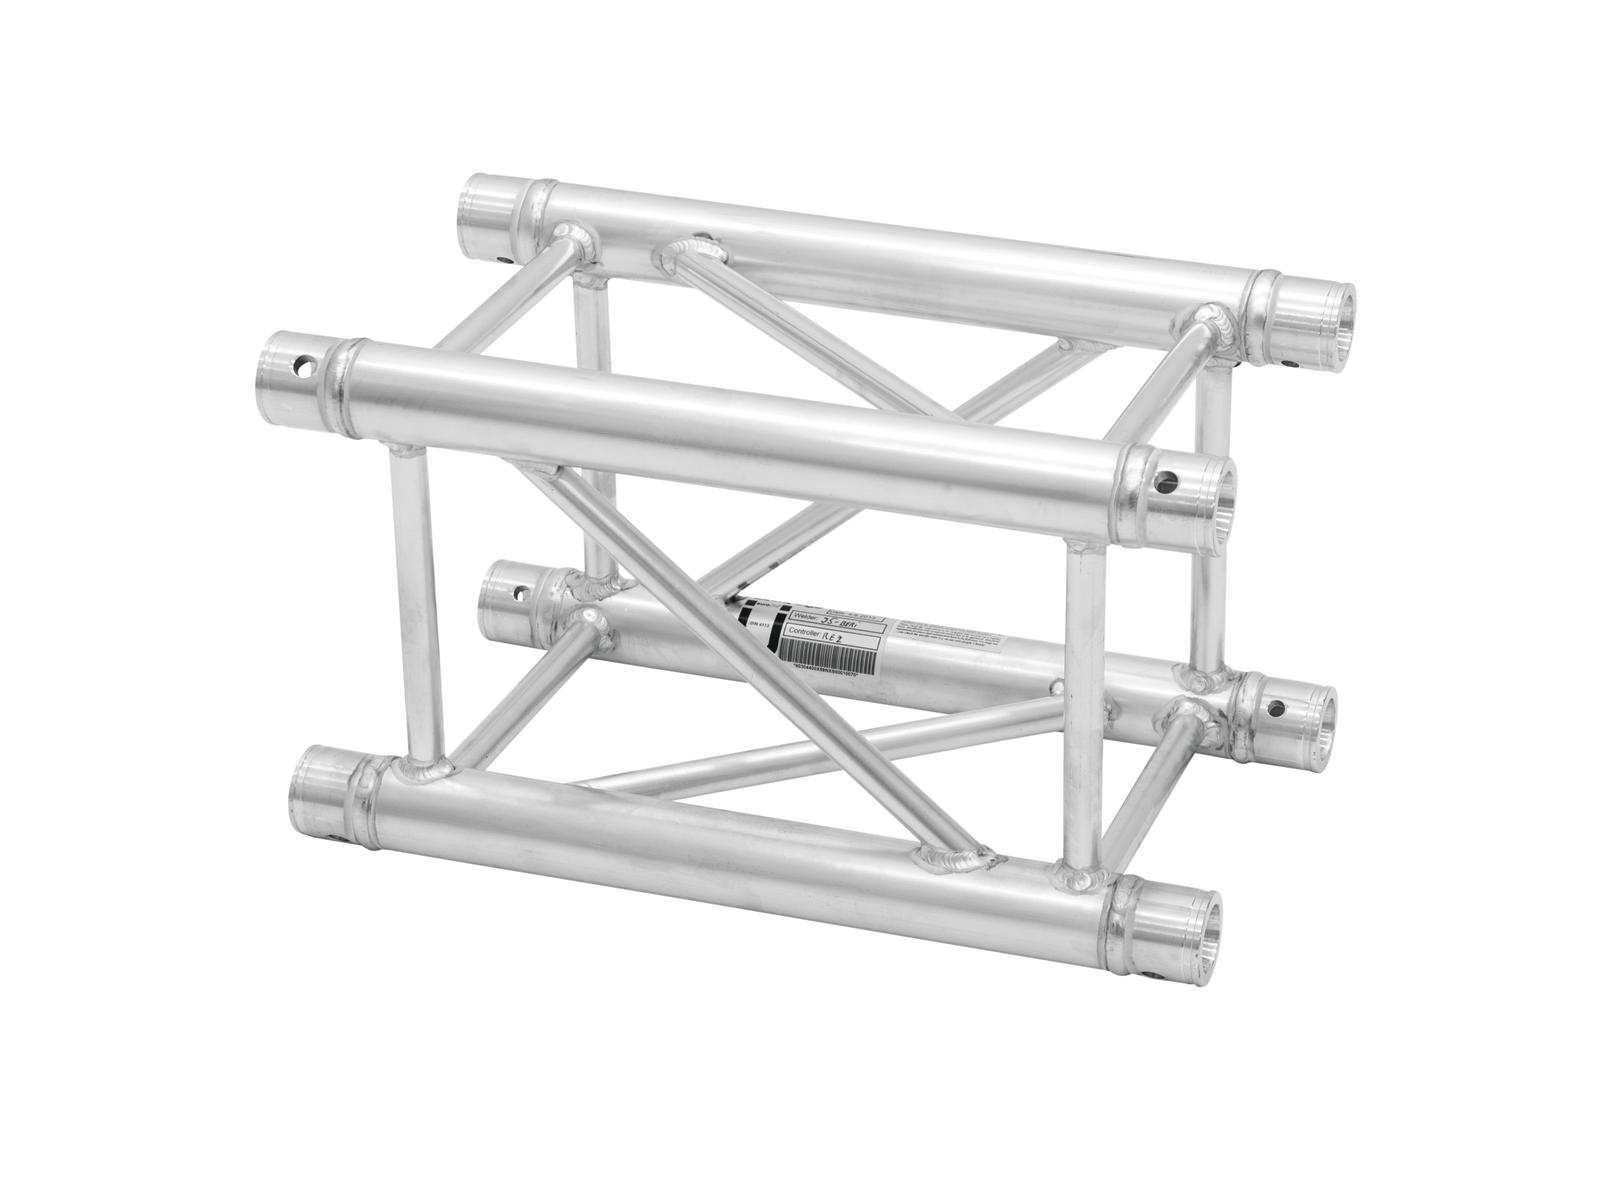 ALUTRUSS TOWERTRUSS TQTR-500 a 4 vie traverse